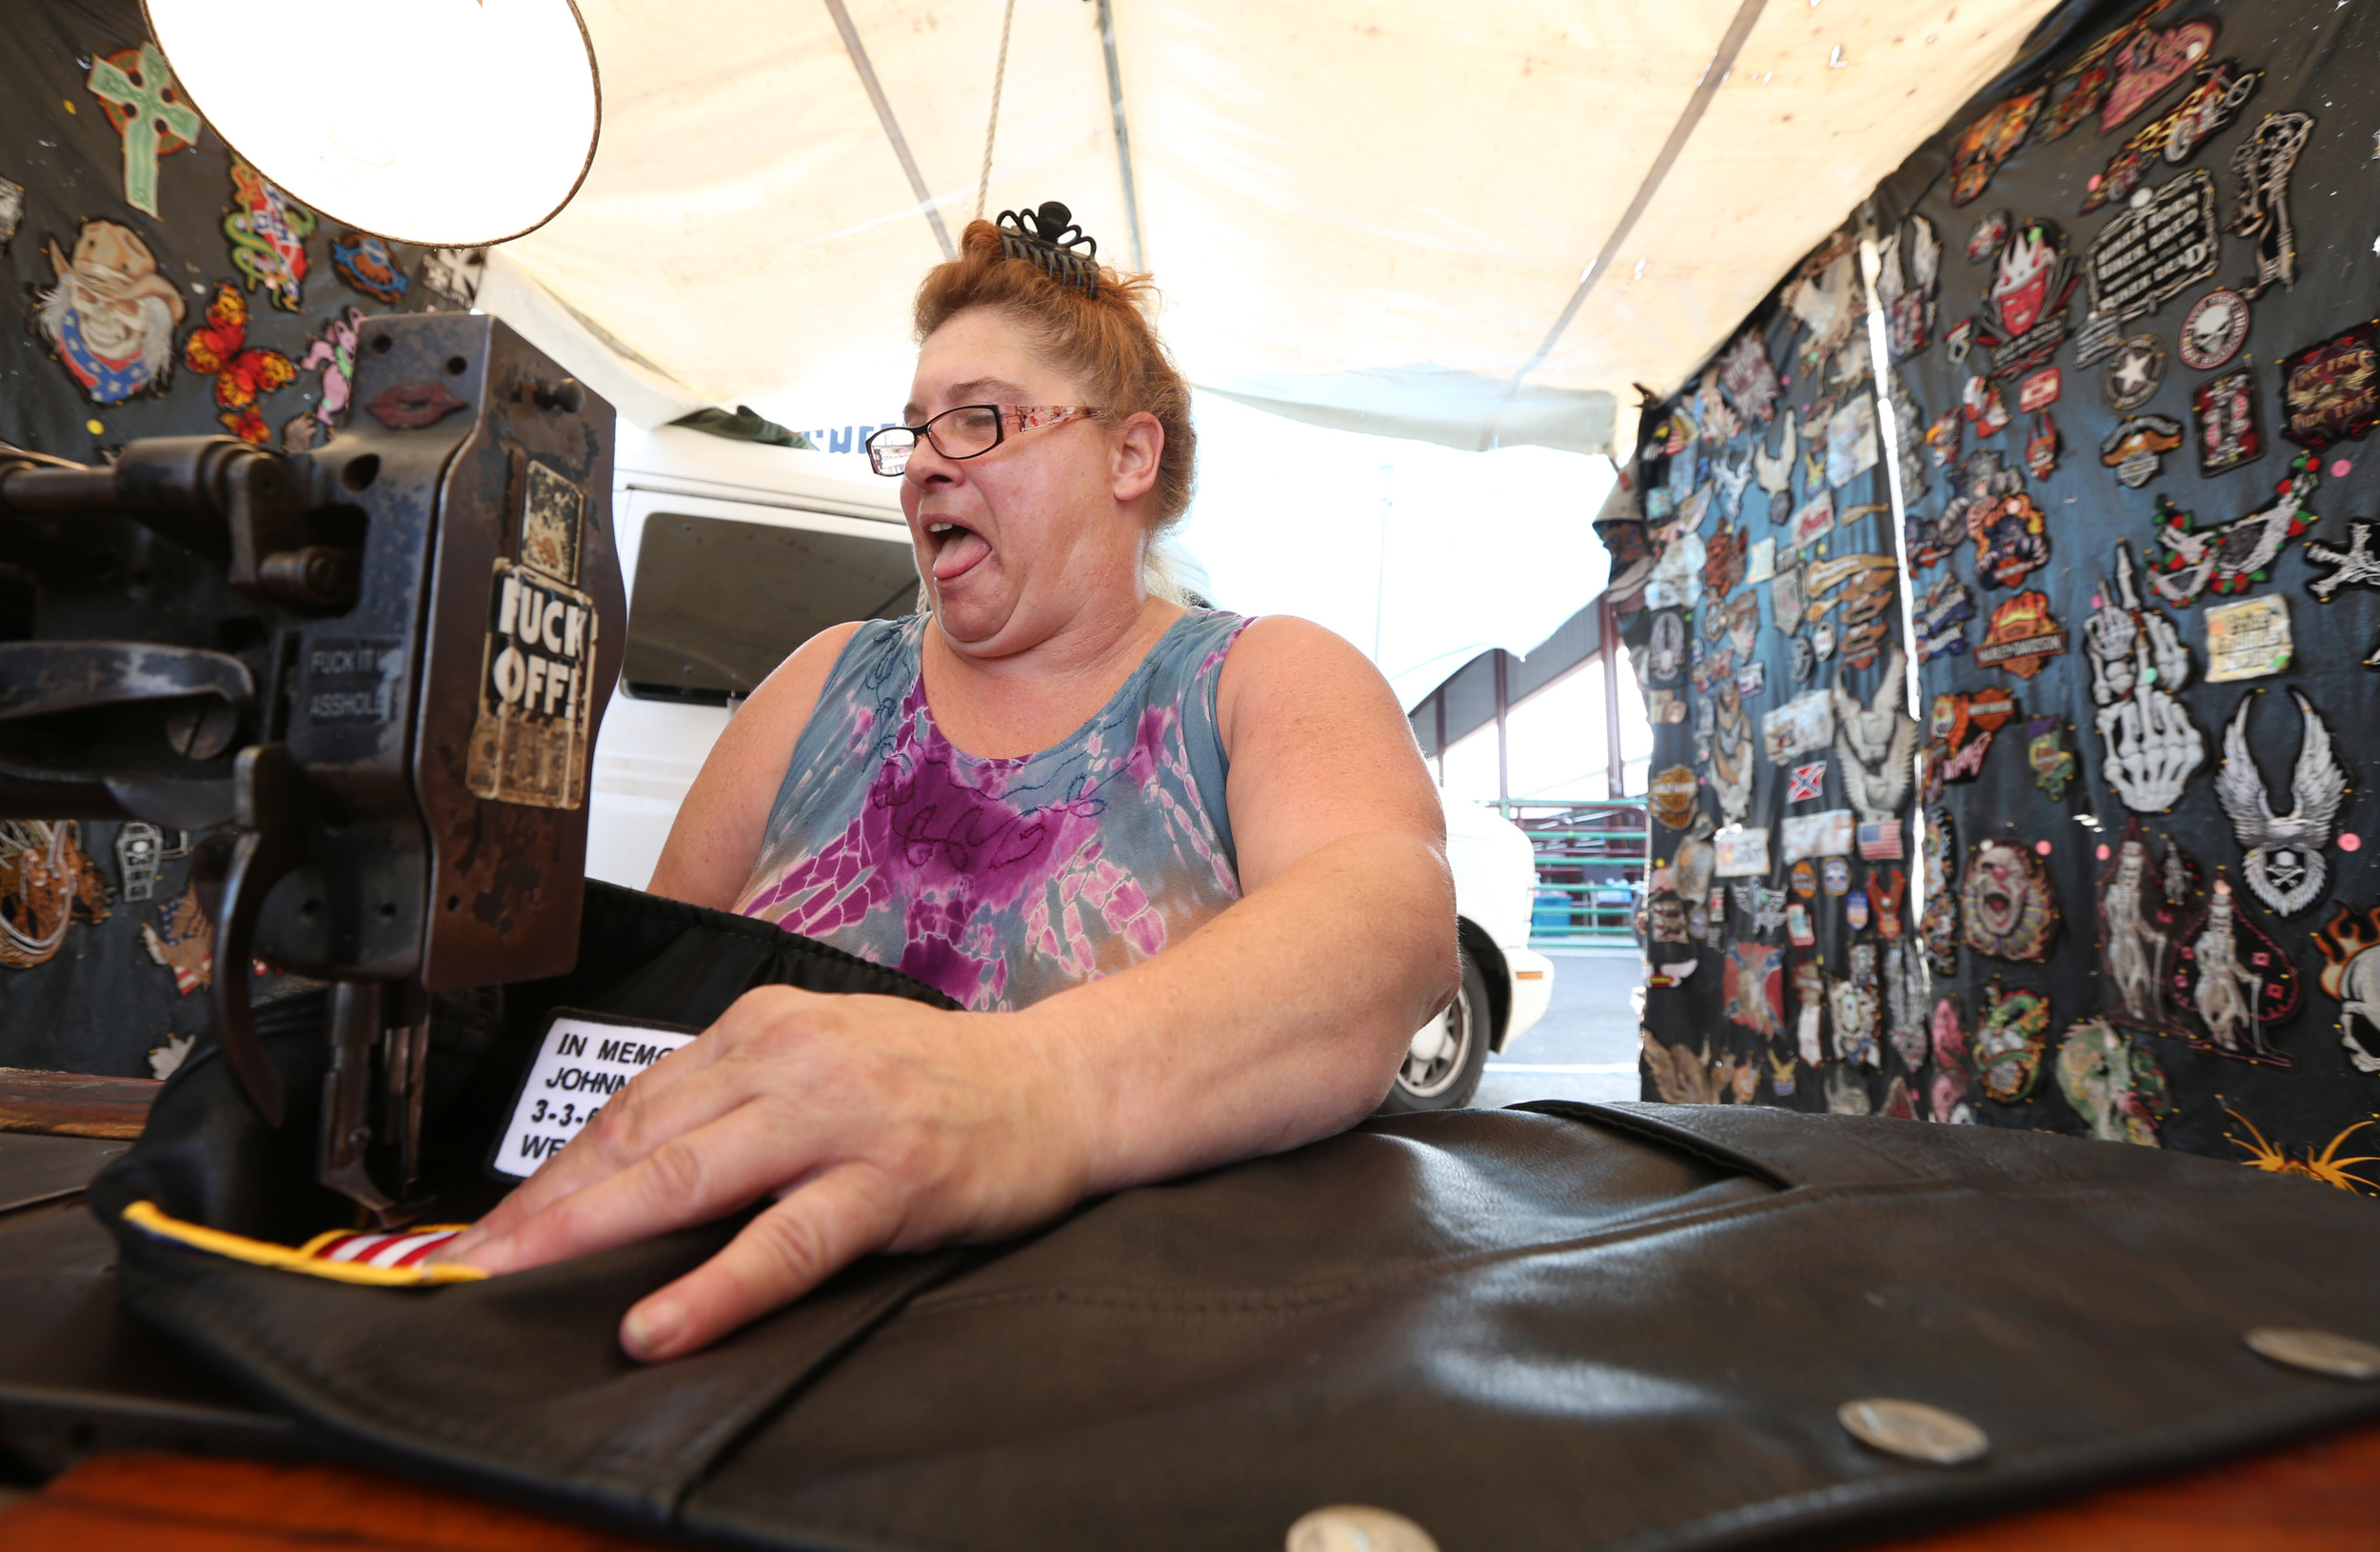 "Miss Chrissy, ""The Patch Queen,"" and owner of Bee-Bad Leathers, sewed patches onto a leather vest for a customer in her booth. Miss Chrissy, who does not go by a last name, said she has been sewing patches onto biker leathers for 30 years."